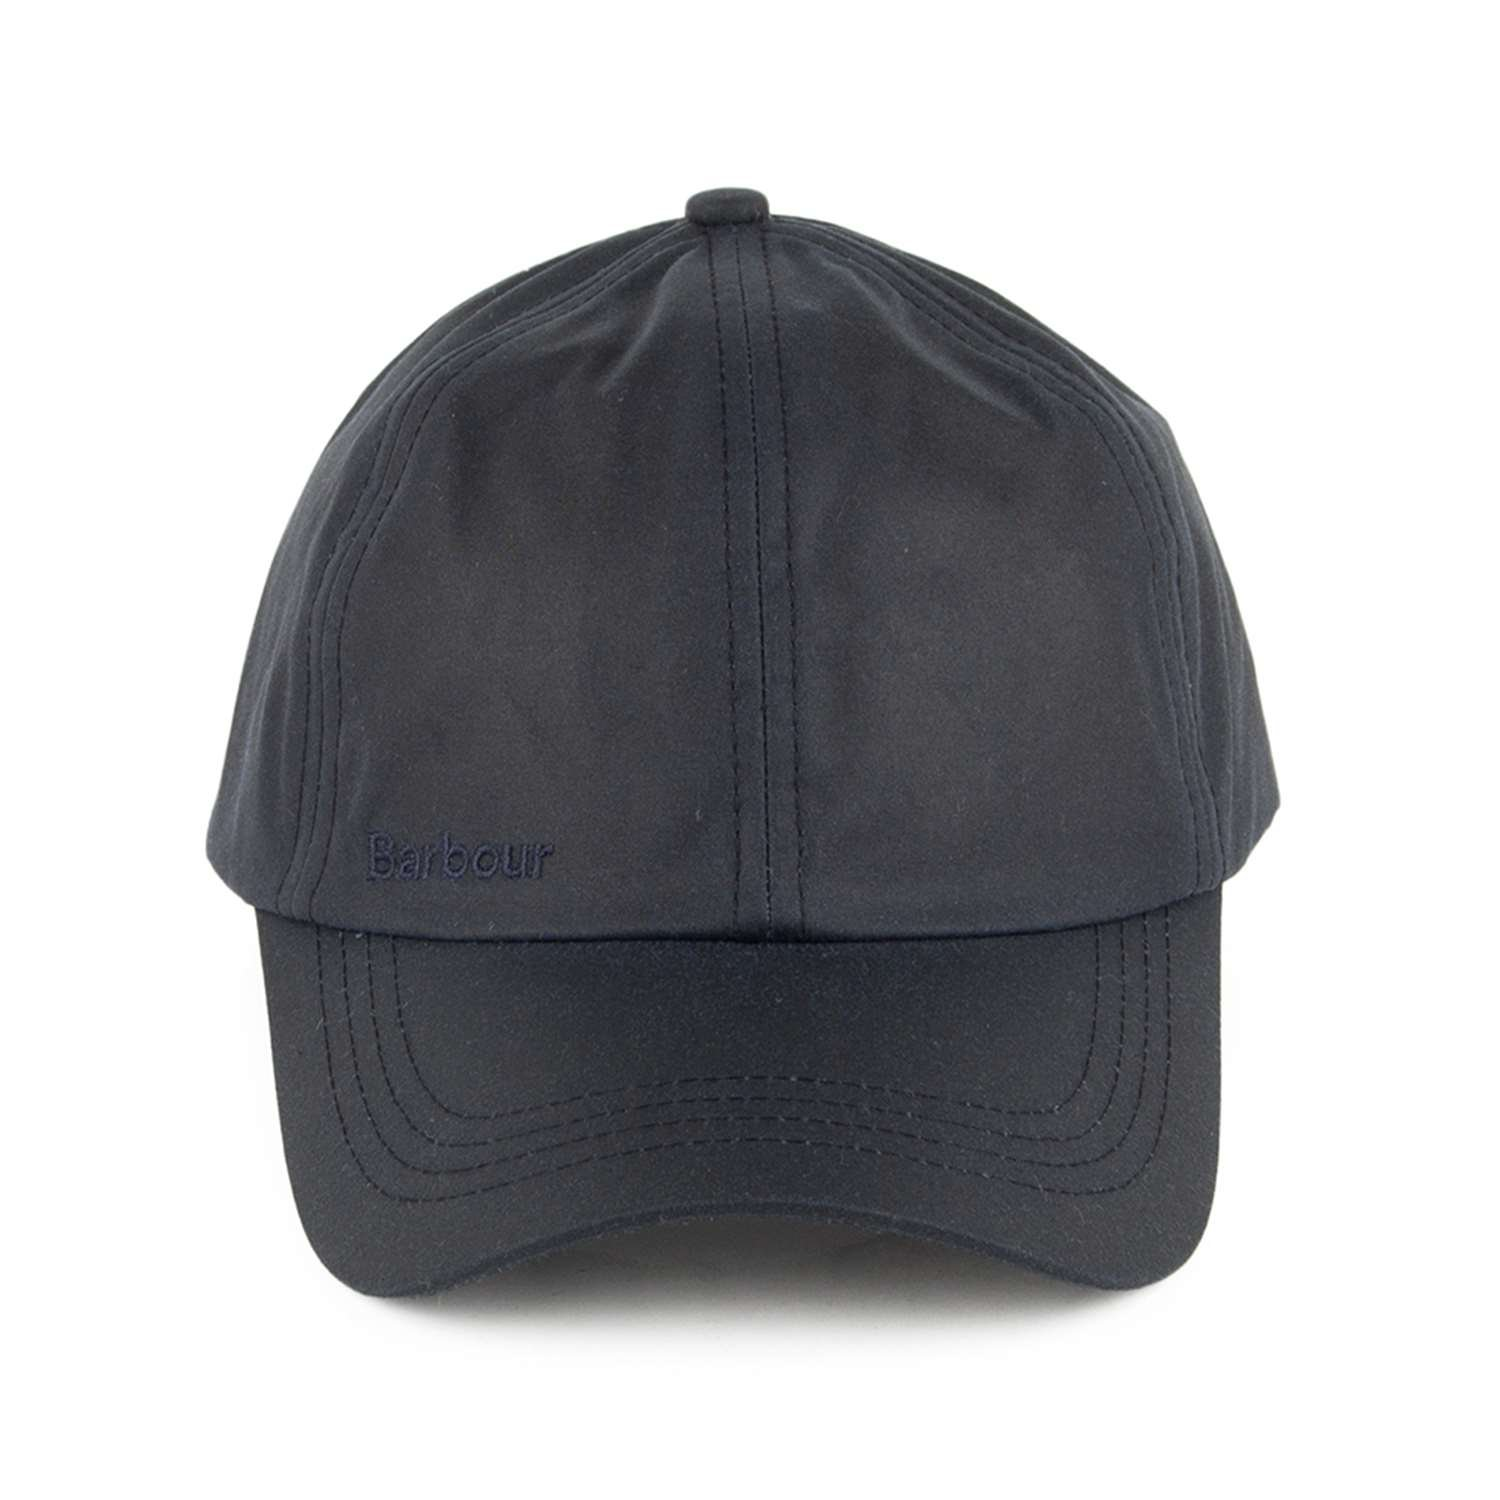 Barbour BAACC0246 NY91 Cappelli Uomo